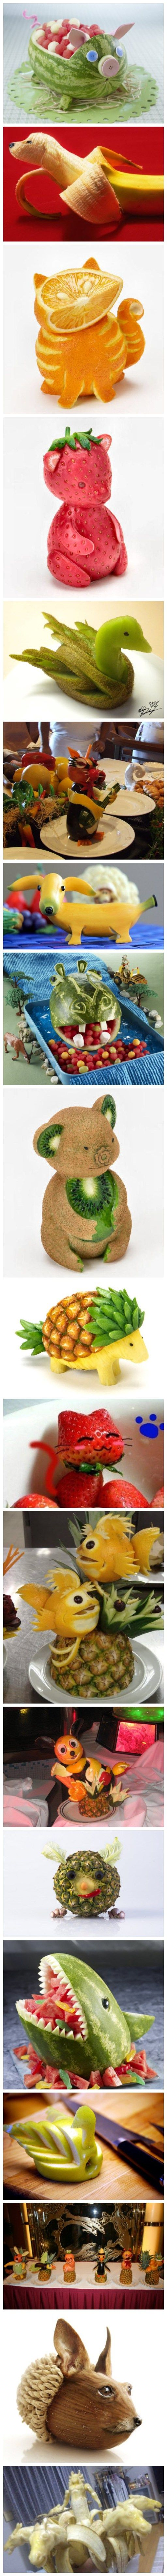 Fruit Carving Fun - When Creativity Meets Fruits | DIY Tag